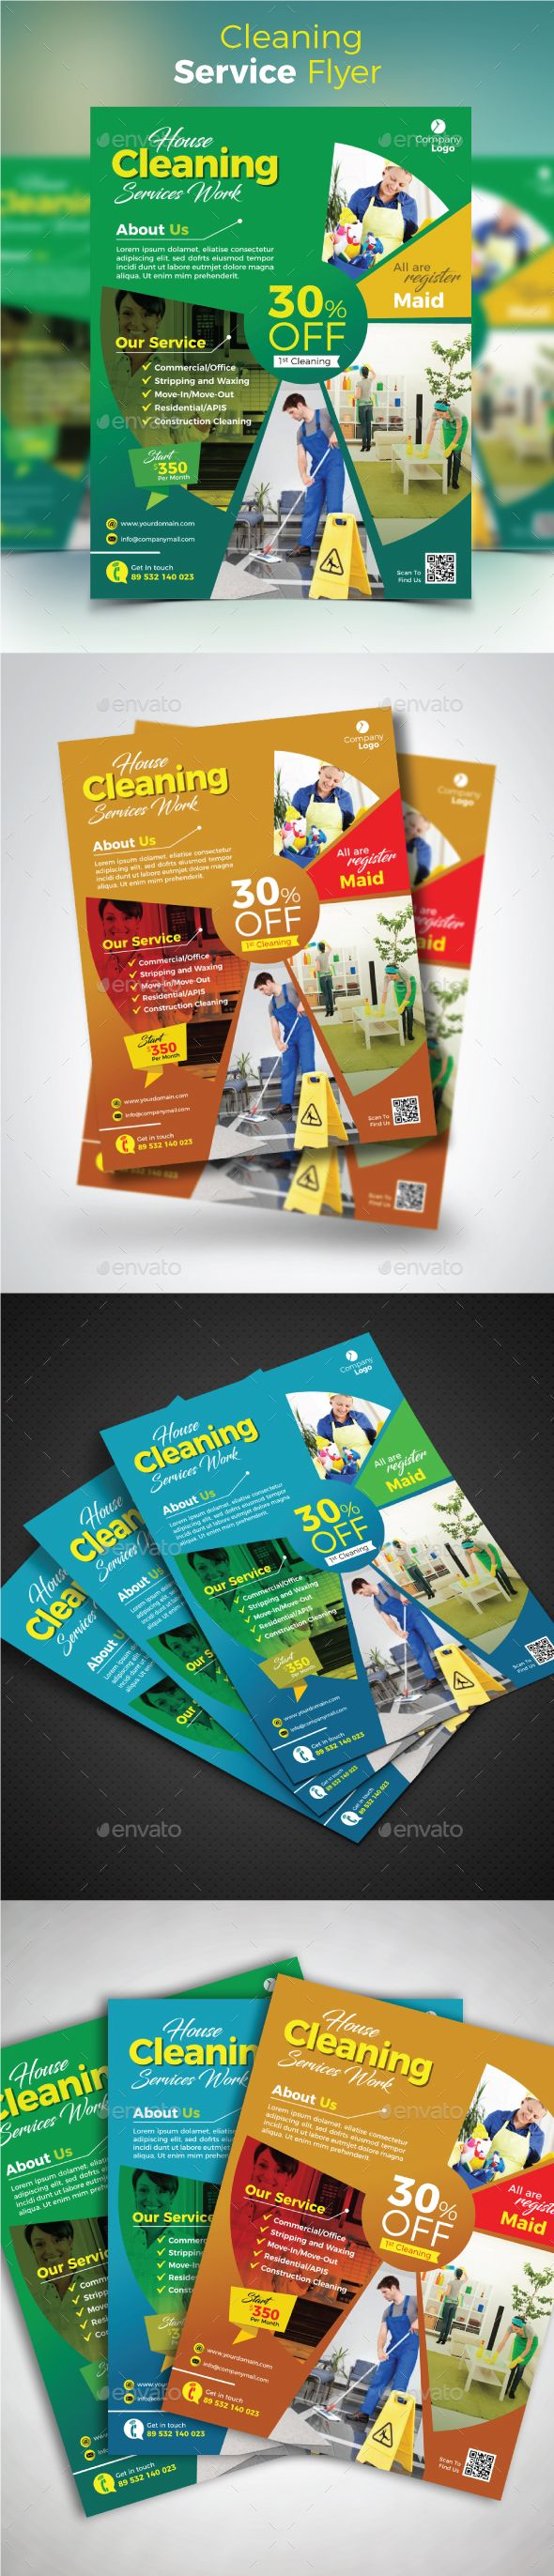 Cleaning Service Flyer Template Vector EPS, AI Illustrator